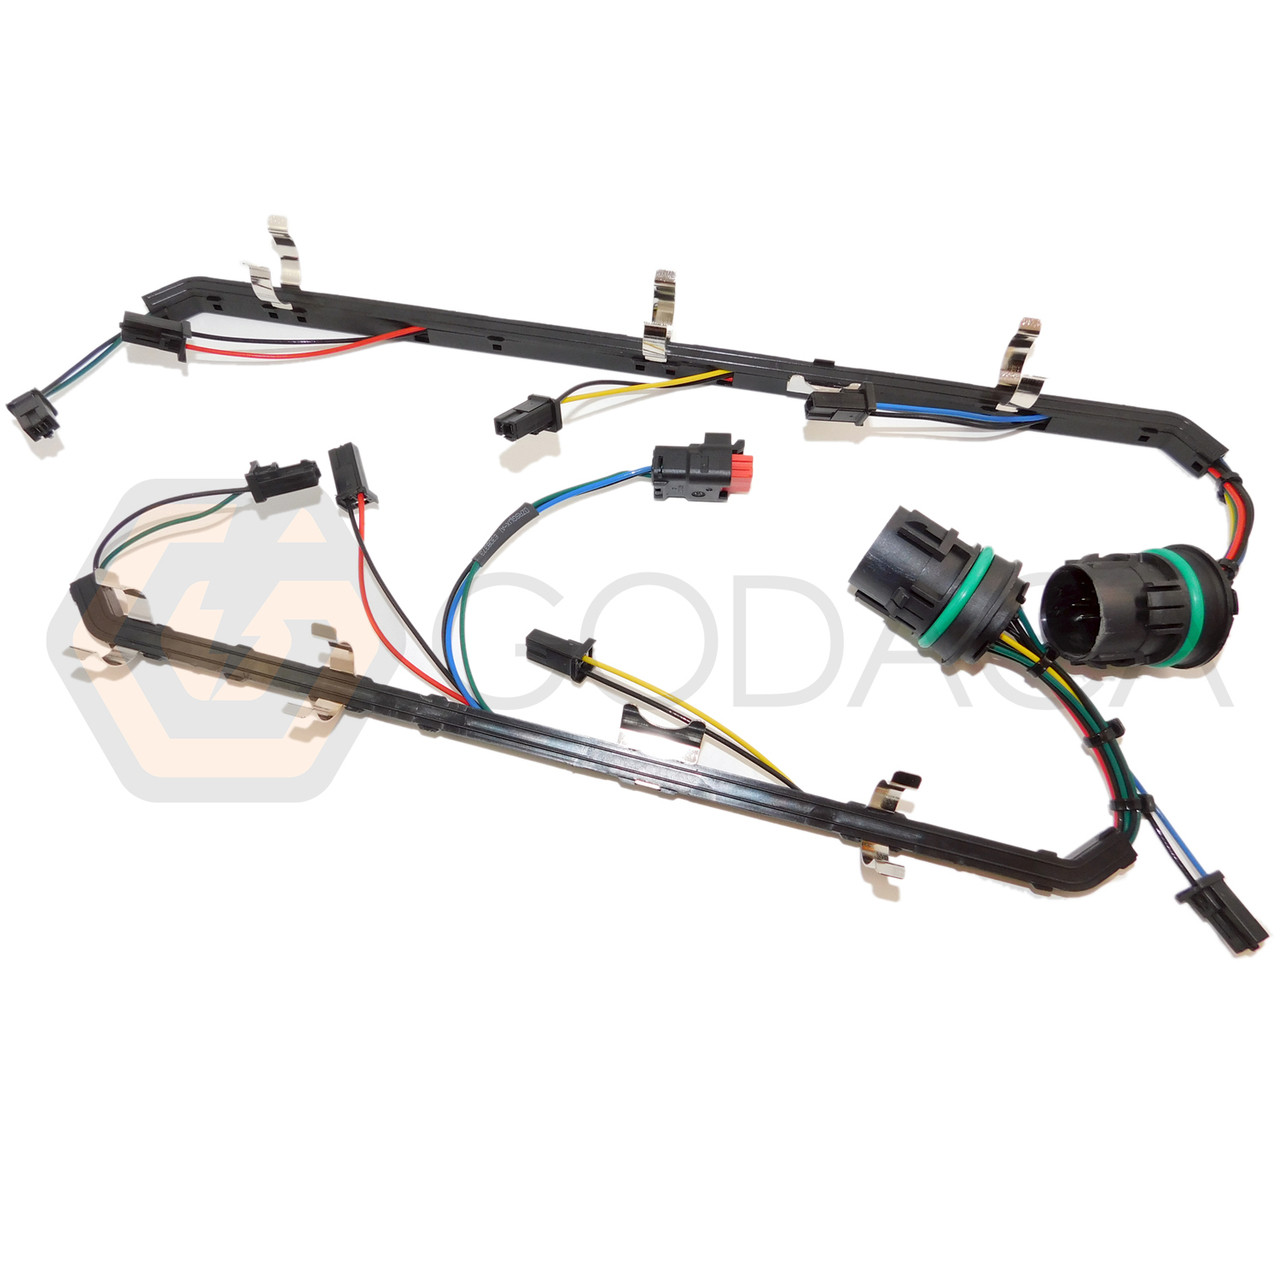 small resolution of 1x wiring harness for ford fuel injector 08 10 6 4l powerstroke diesel godaca llc